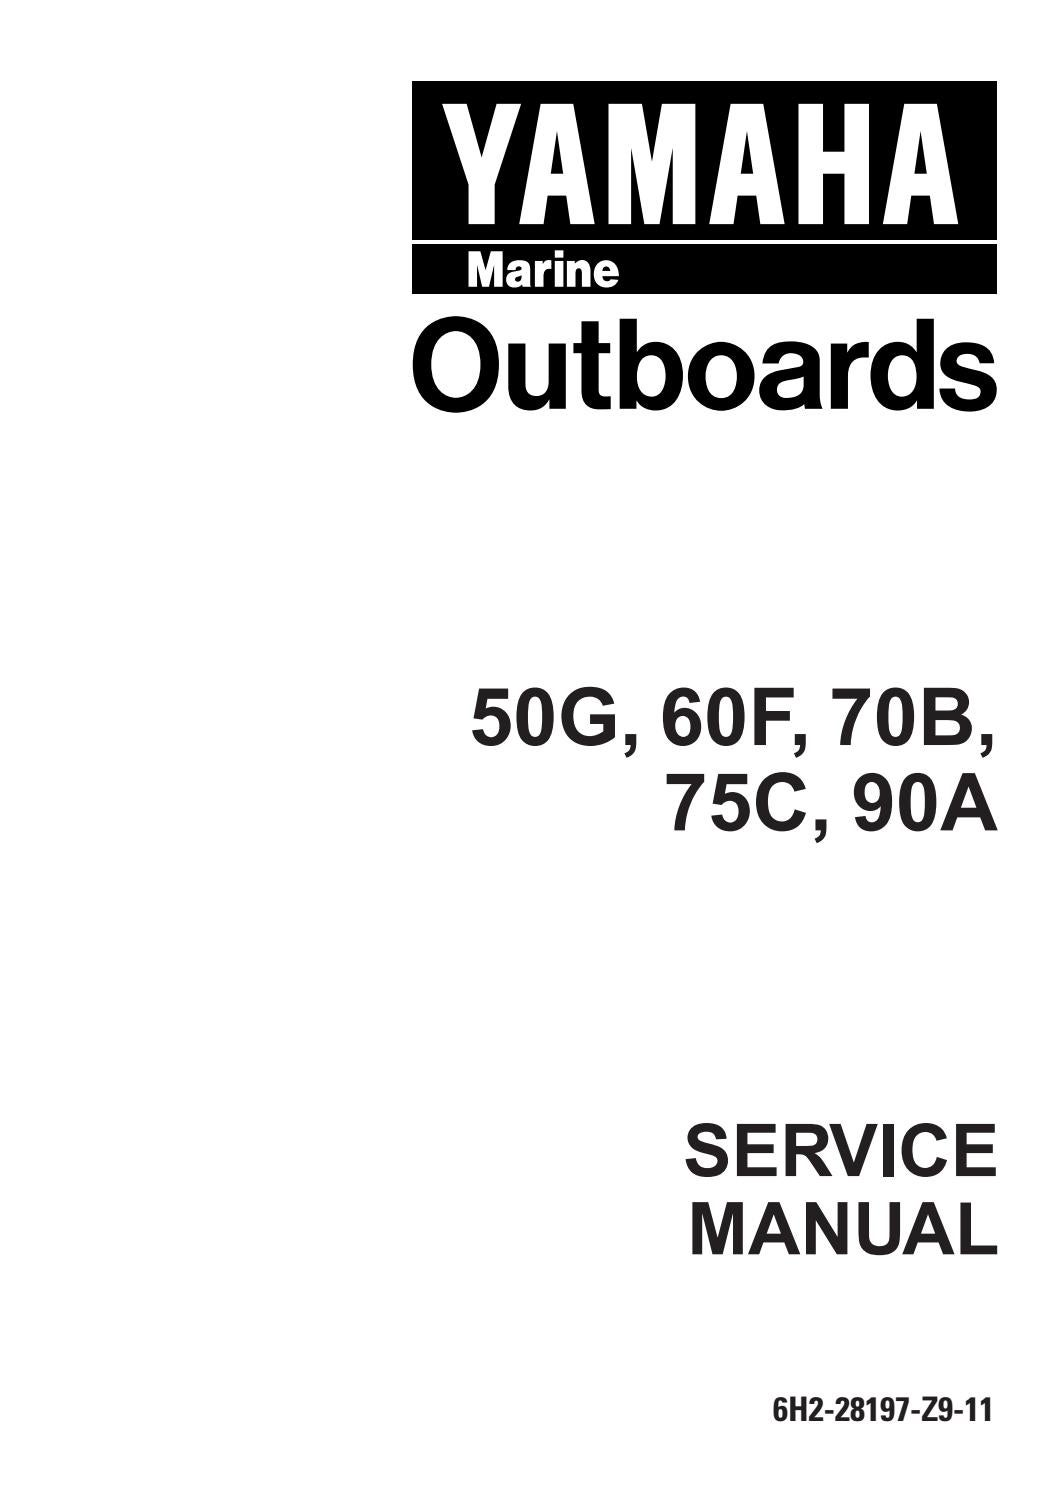 Yamaha 60feto outboard service repair manual s 150756 by